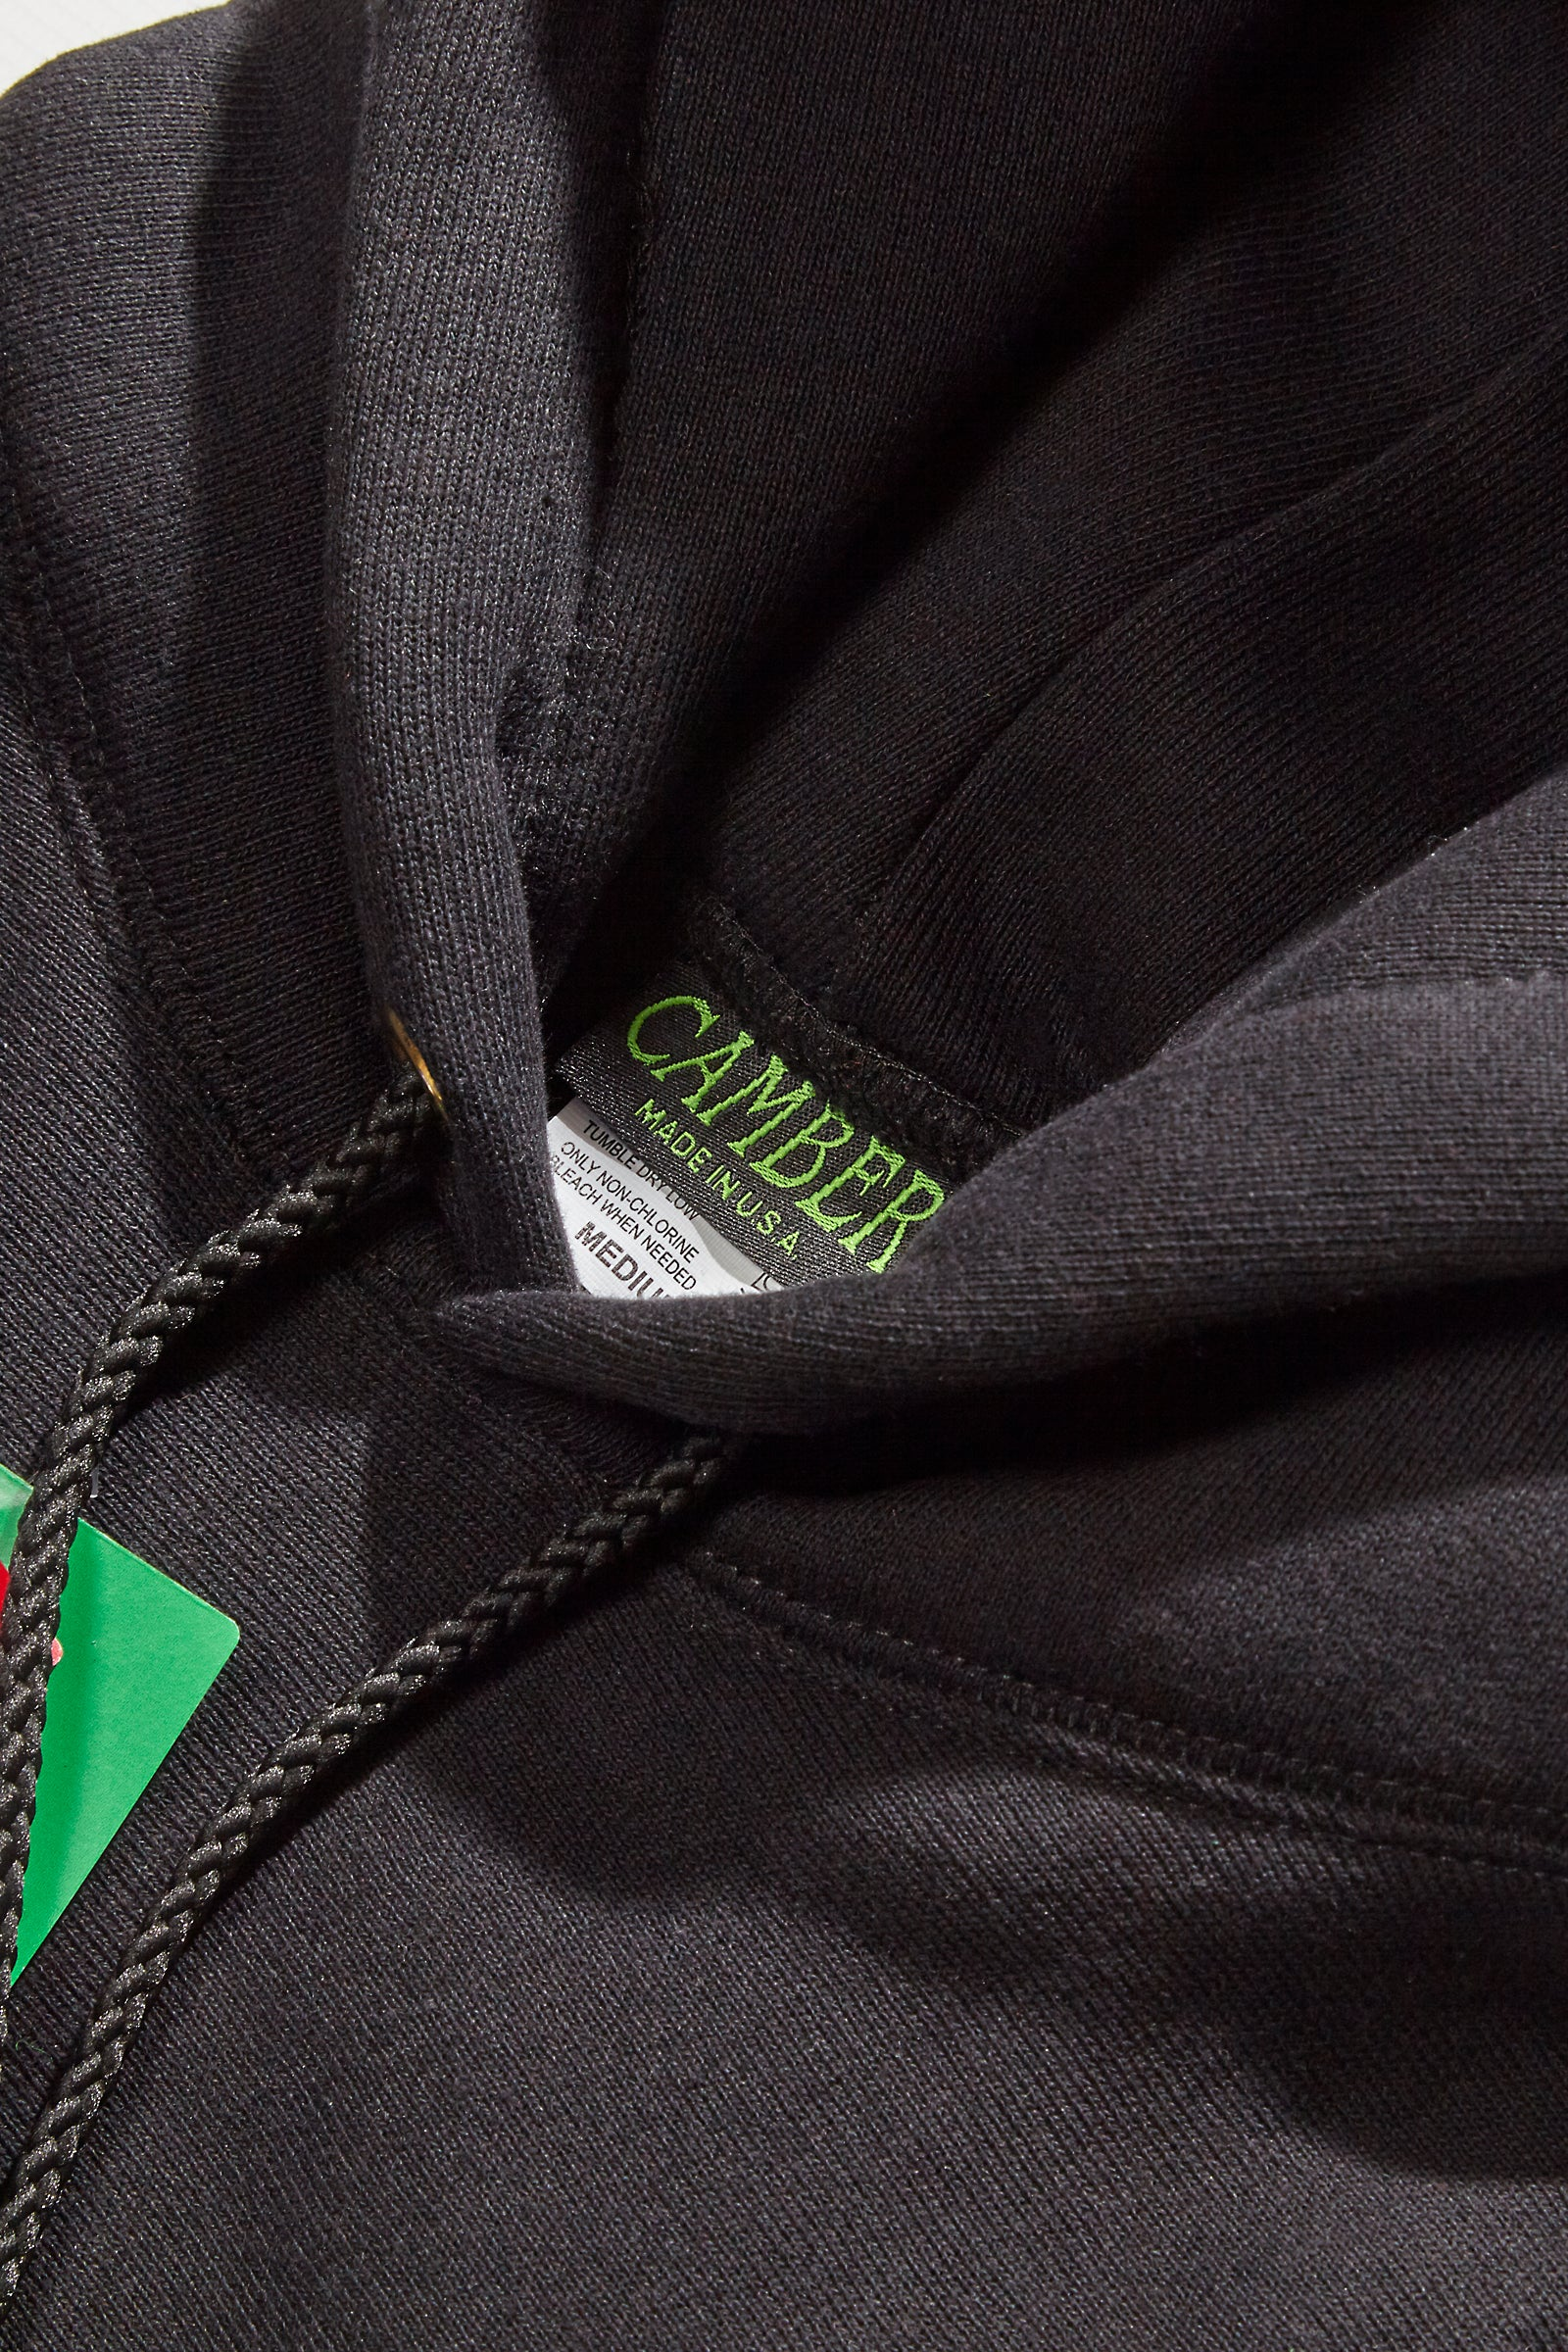 Camber USA - 232 12oz Pullover Hoodie - Black